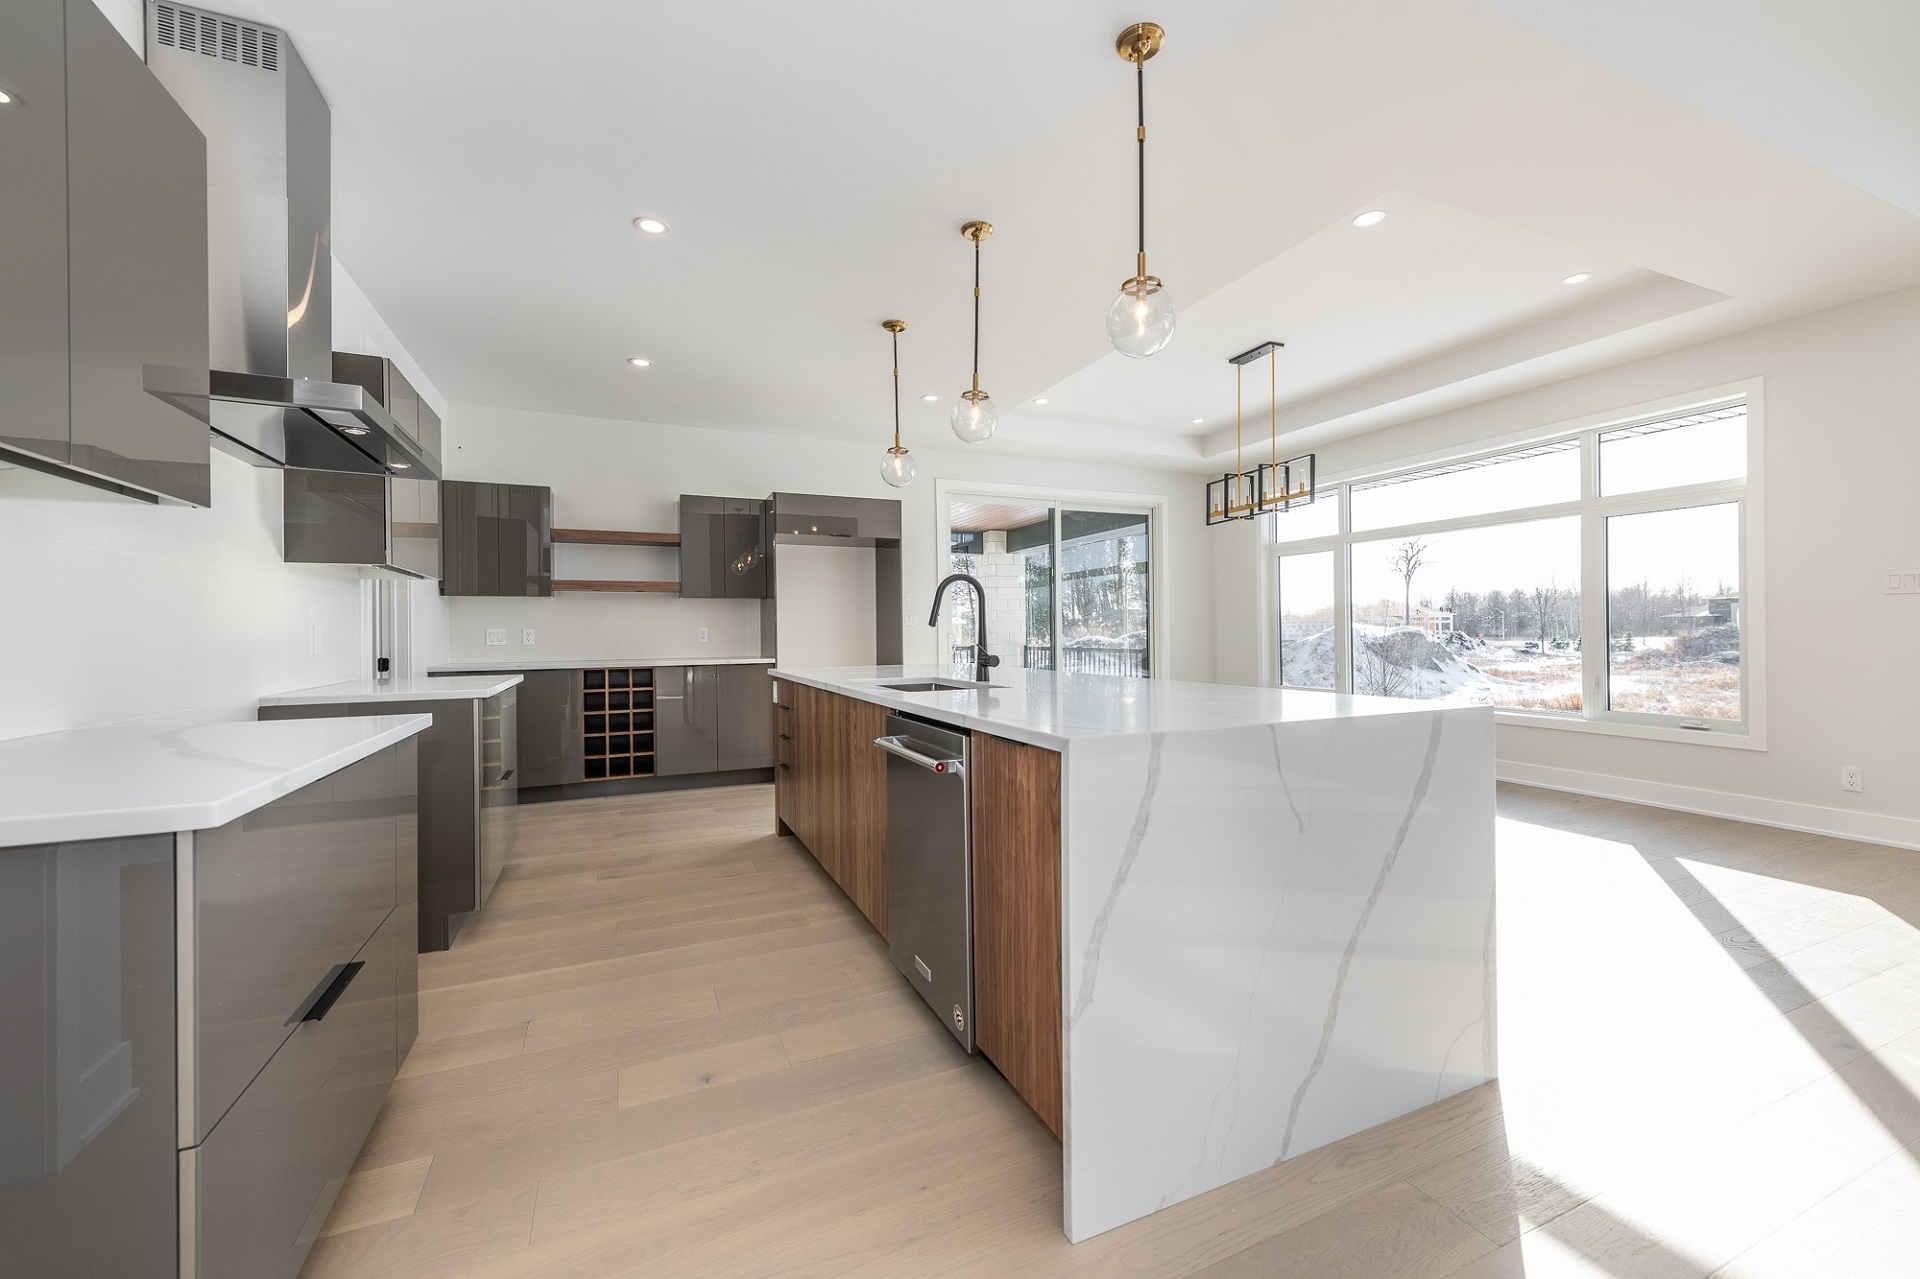 A kitchen featuring Acrylux cabinets in Grey.